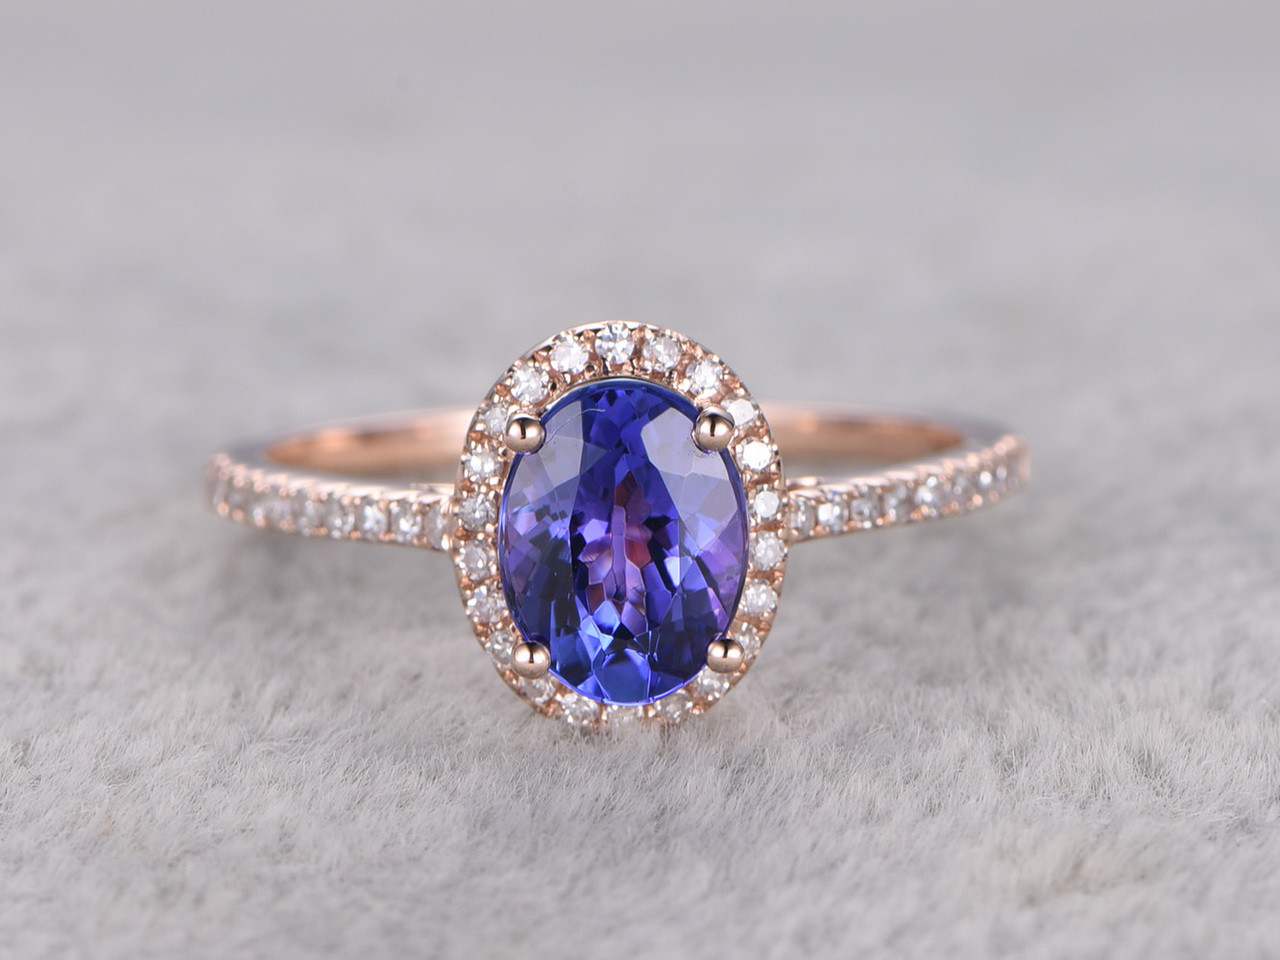 tanzanite is itm engagement solid gold s white image ring ebay diamond loading